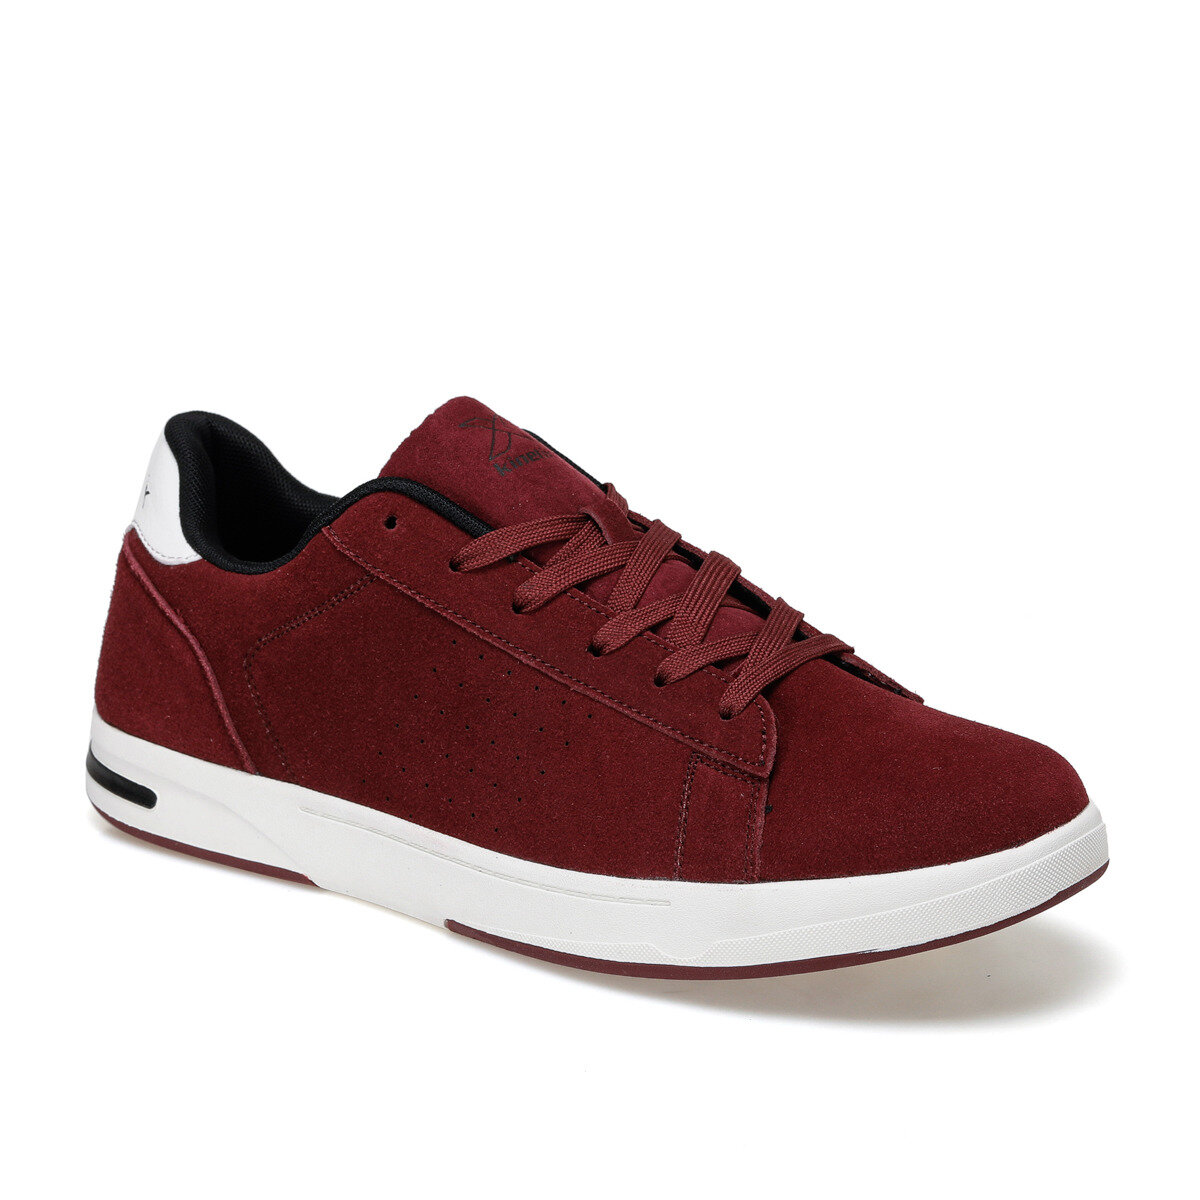 FLO HELDER L M Burgundy Men 'S Sneaker Shoes KINETIX